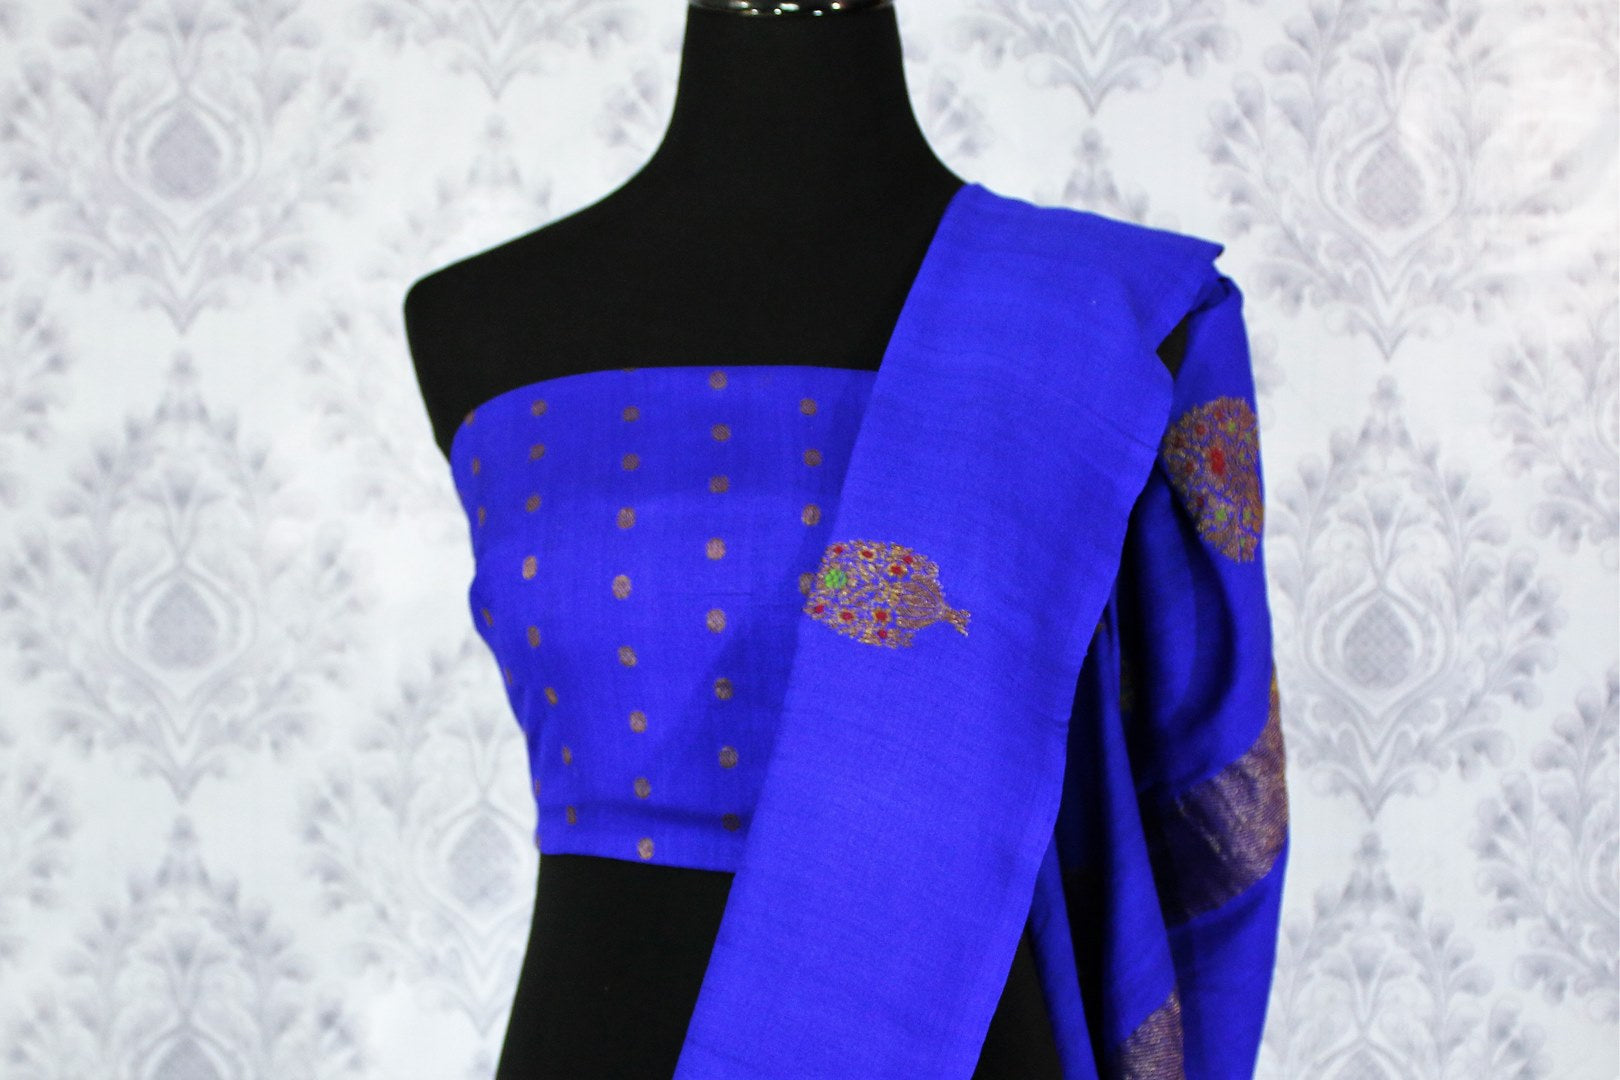 Elegant blue muga Benarasi saree with buta buy online in USA. Shop the latest design Indian designer sarees from Pure Elegance clothing store in USA for women.-blouse pallu